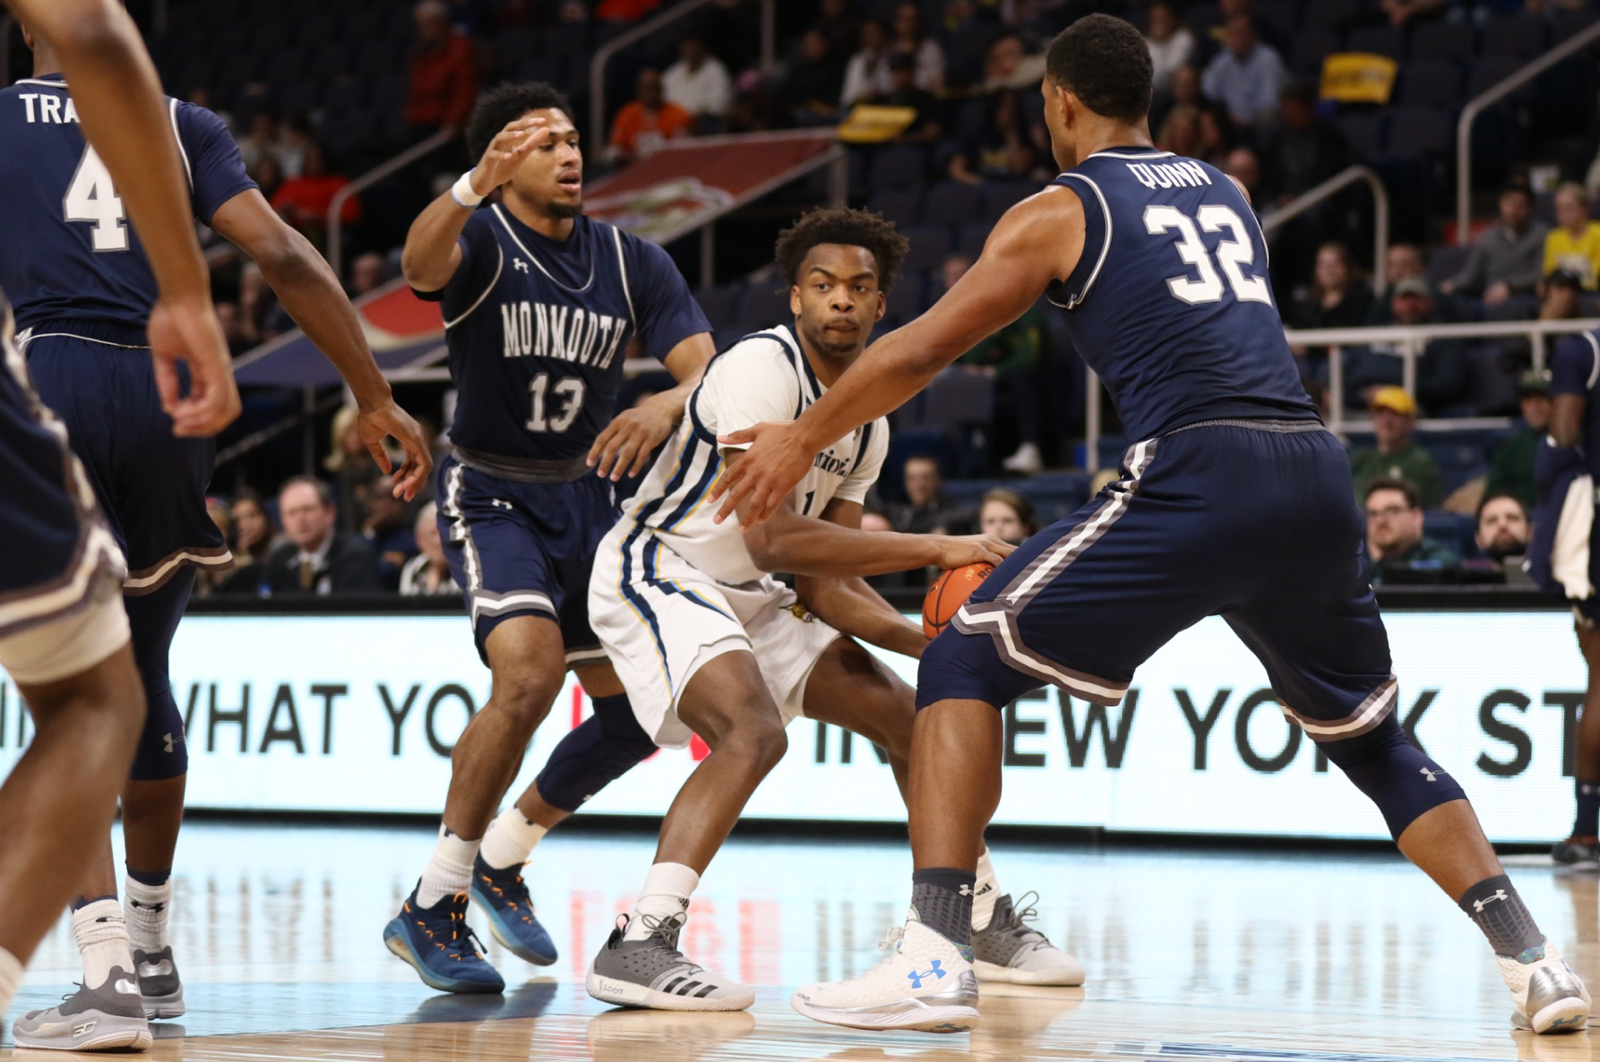 Quinnipiac men's basketball ends season with loss to Monmouth